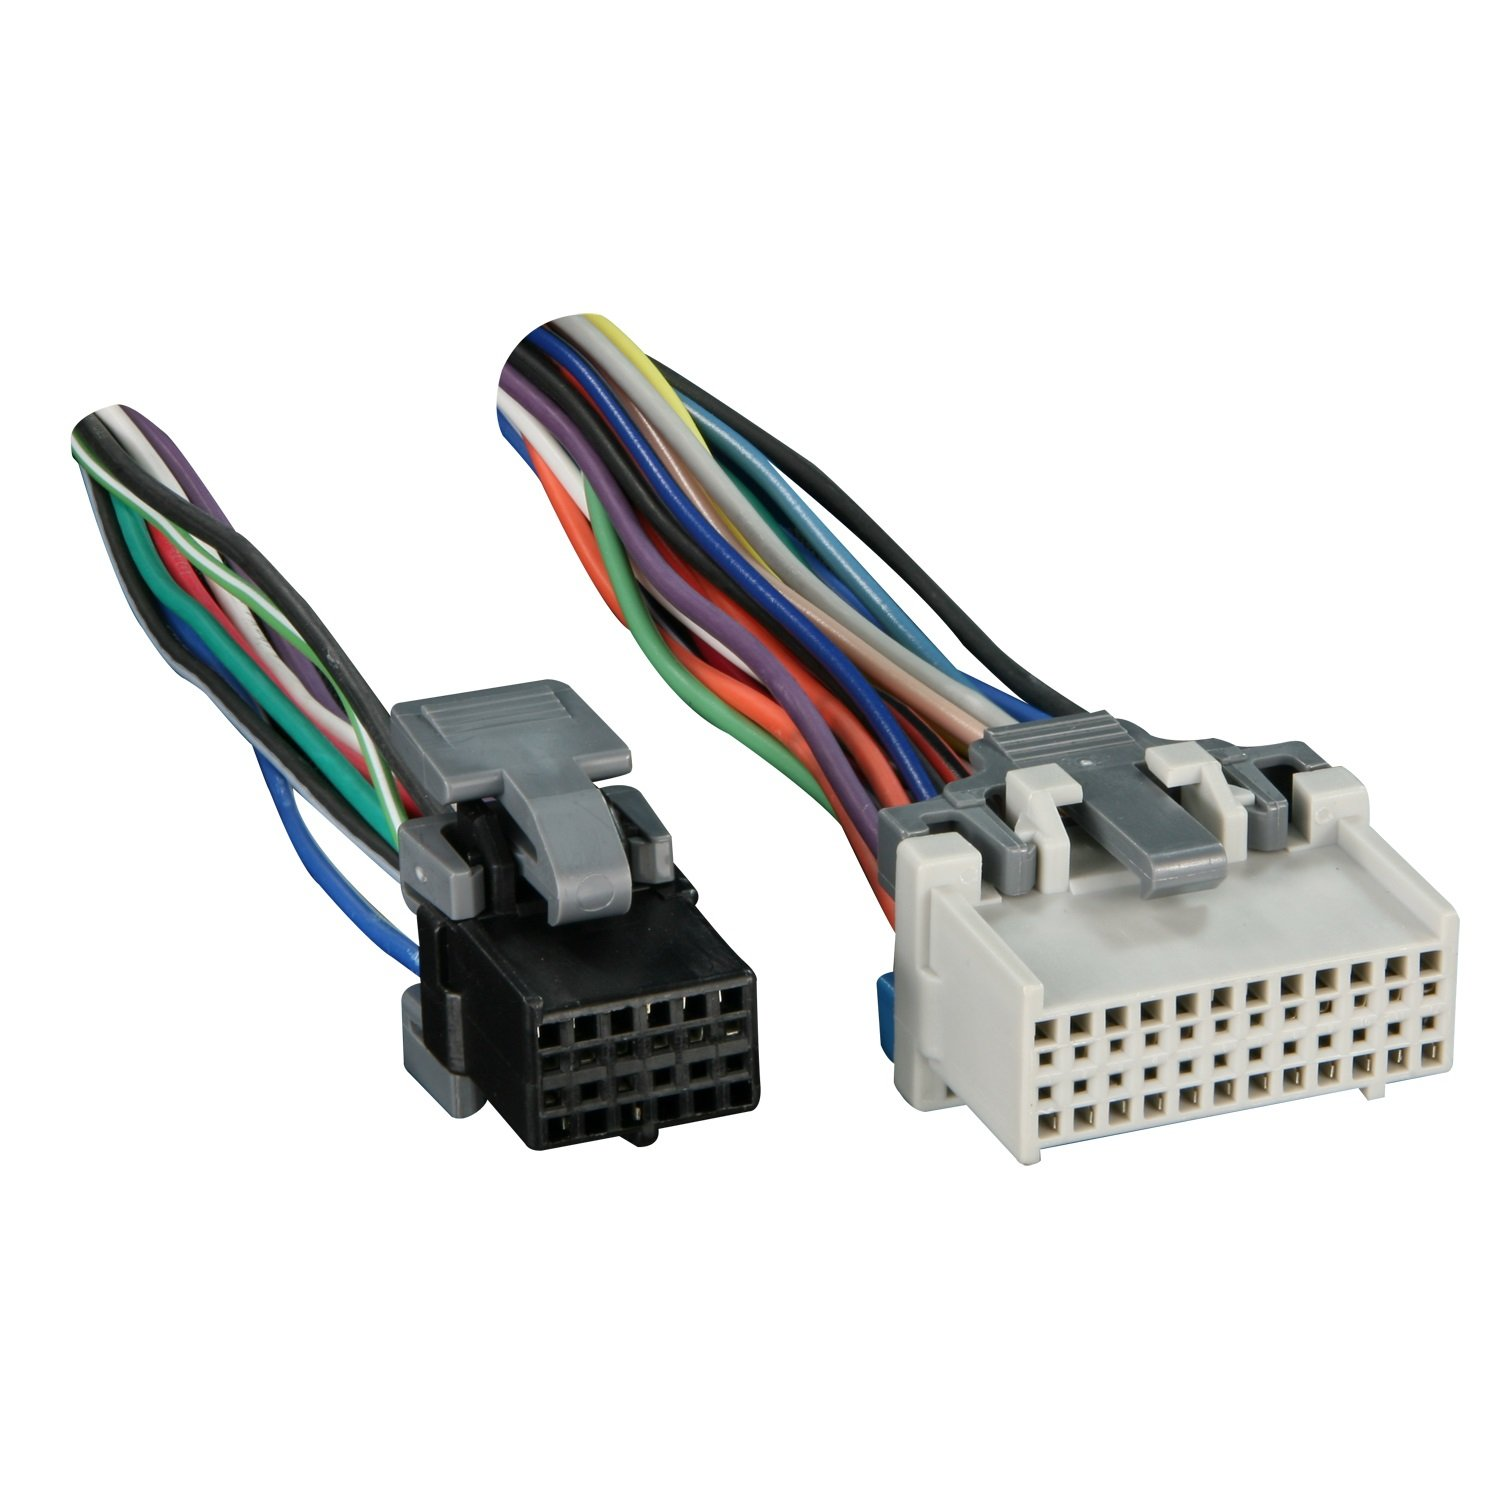 711log4bdML._SL1500_ amazon com metra turbowires 71 2003 1 wiring harness car electronics how much does it cost to replace a wiring harness at beritabola.co